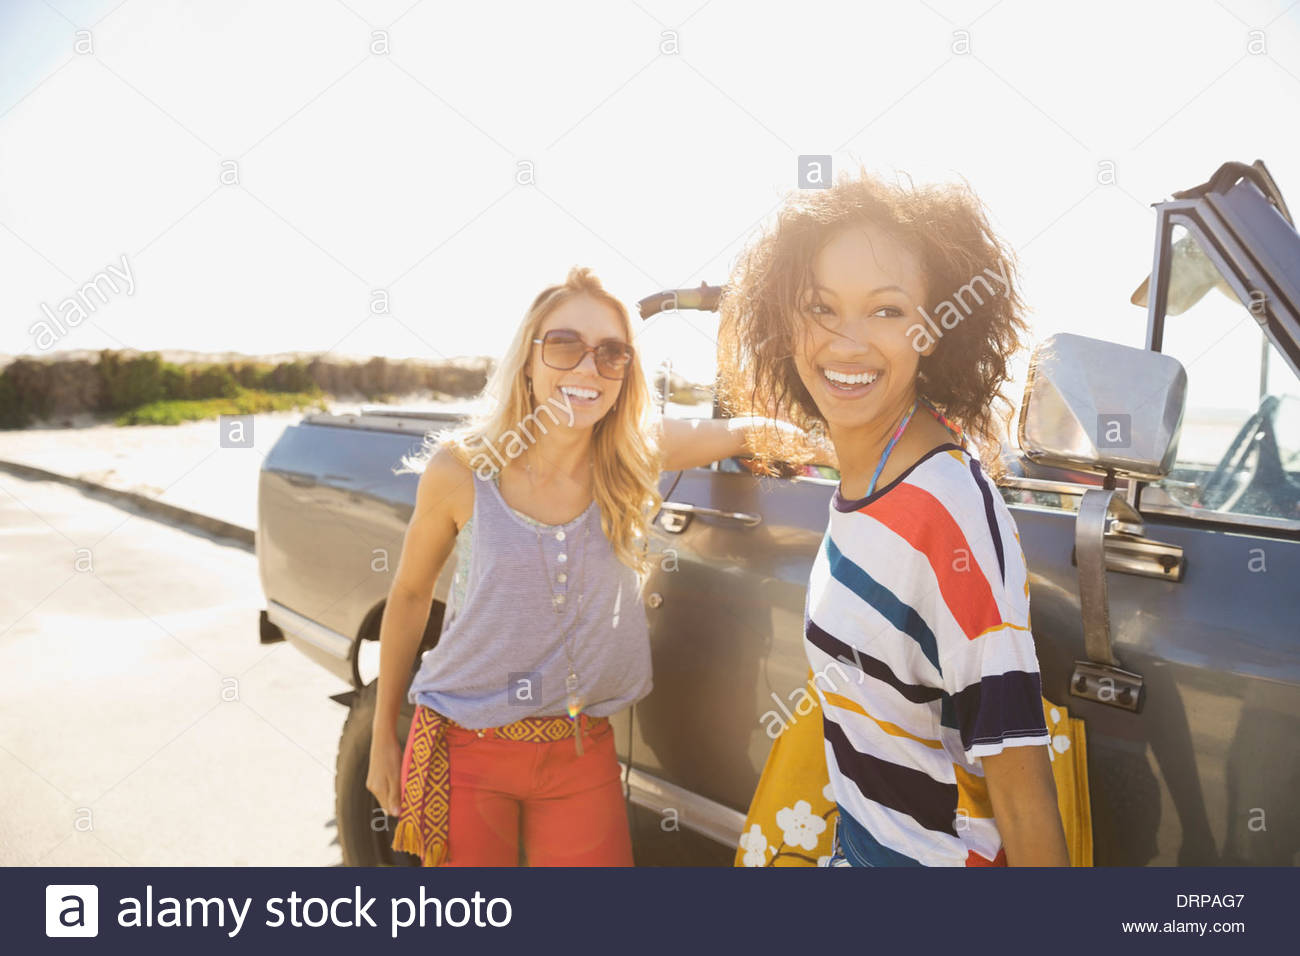 Female friends standing by off-road vehicle - Stock Image